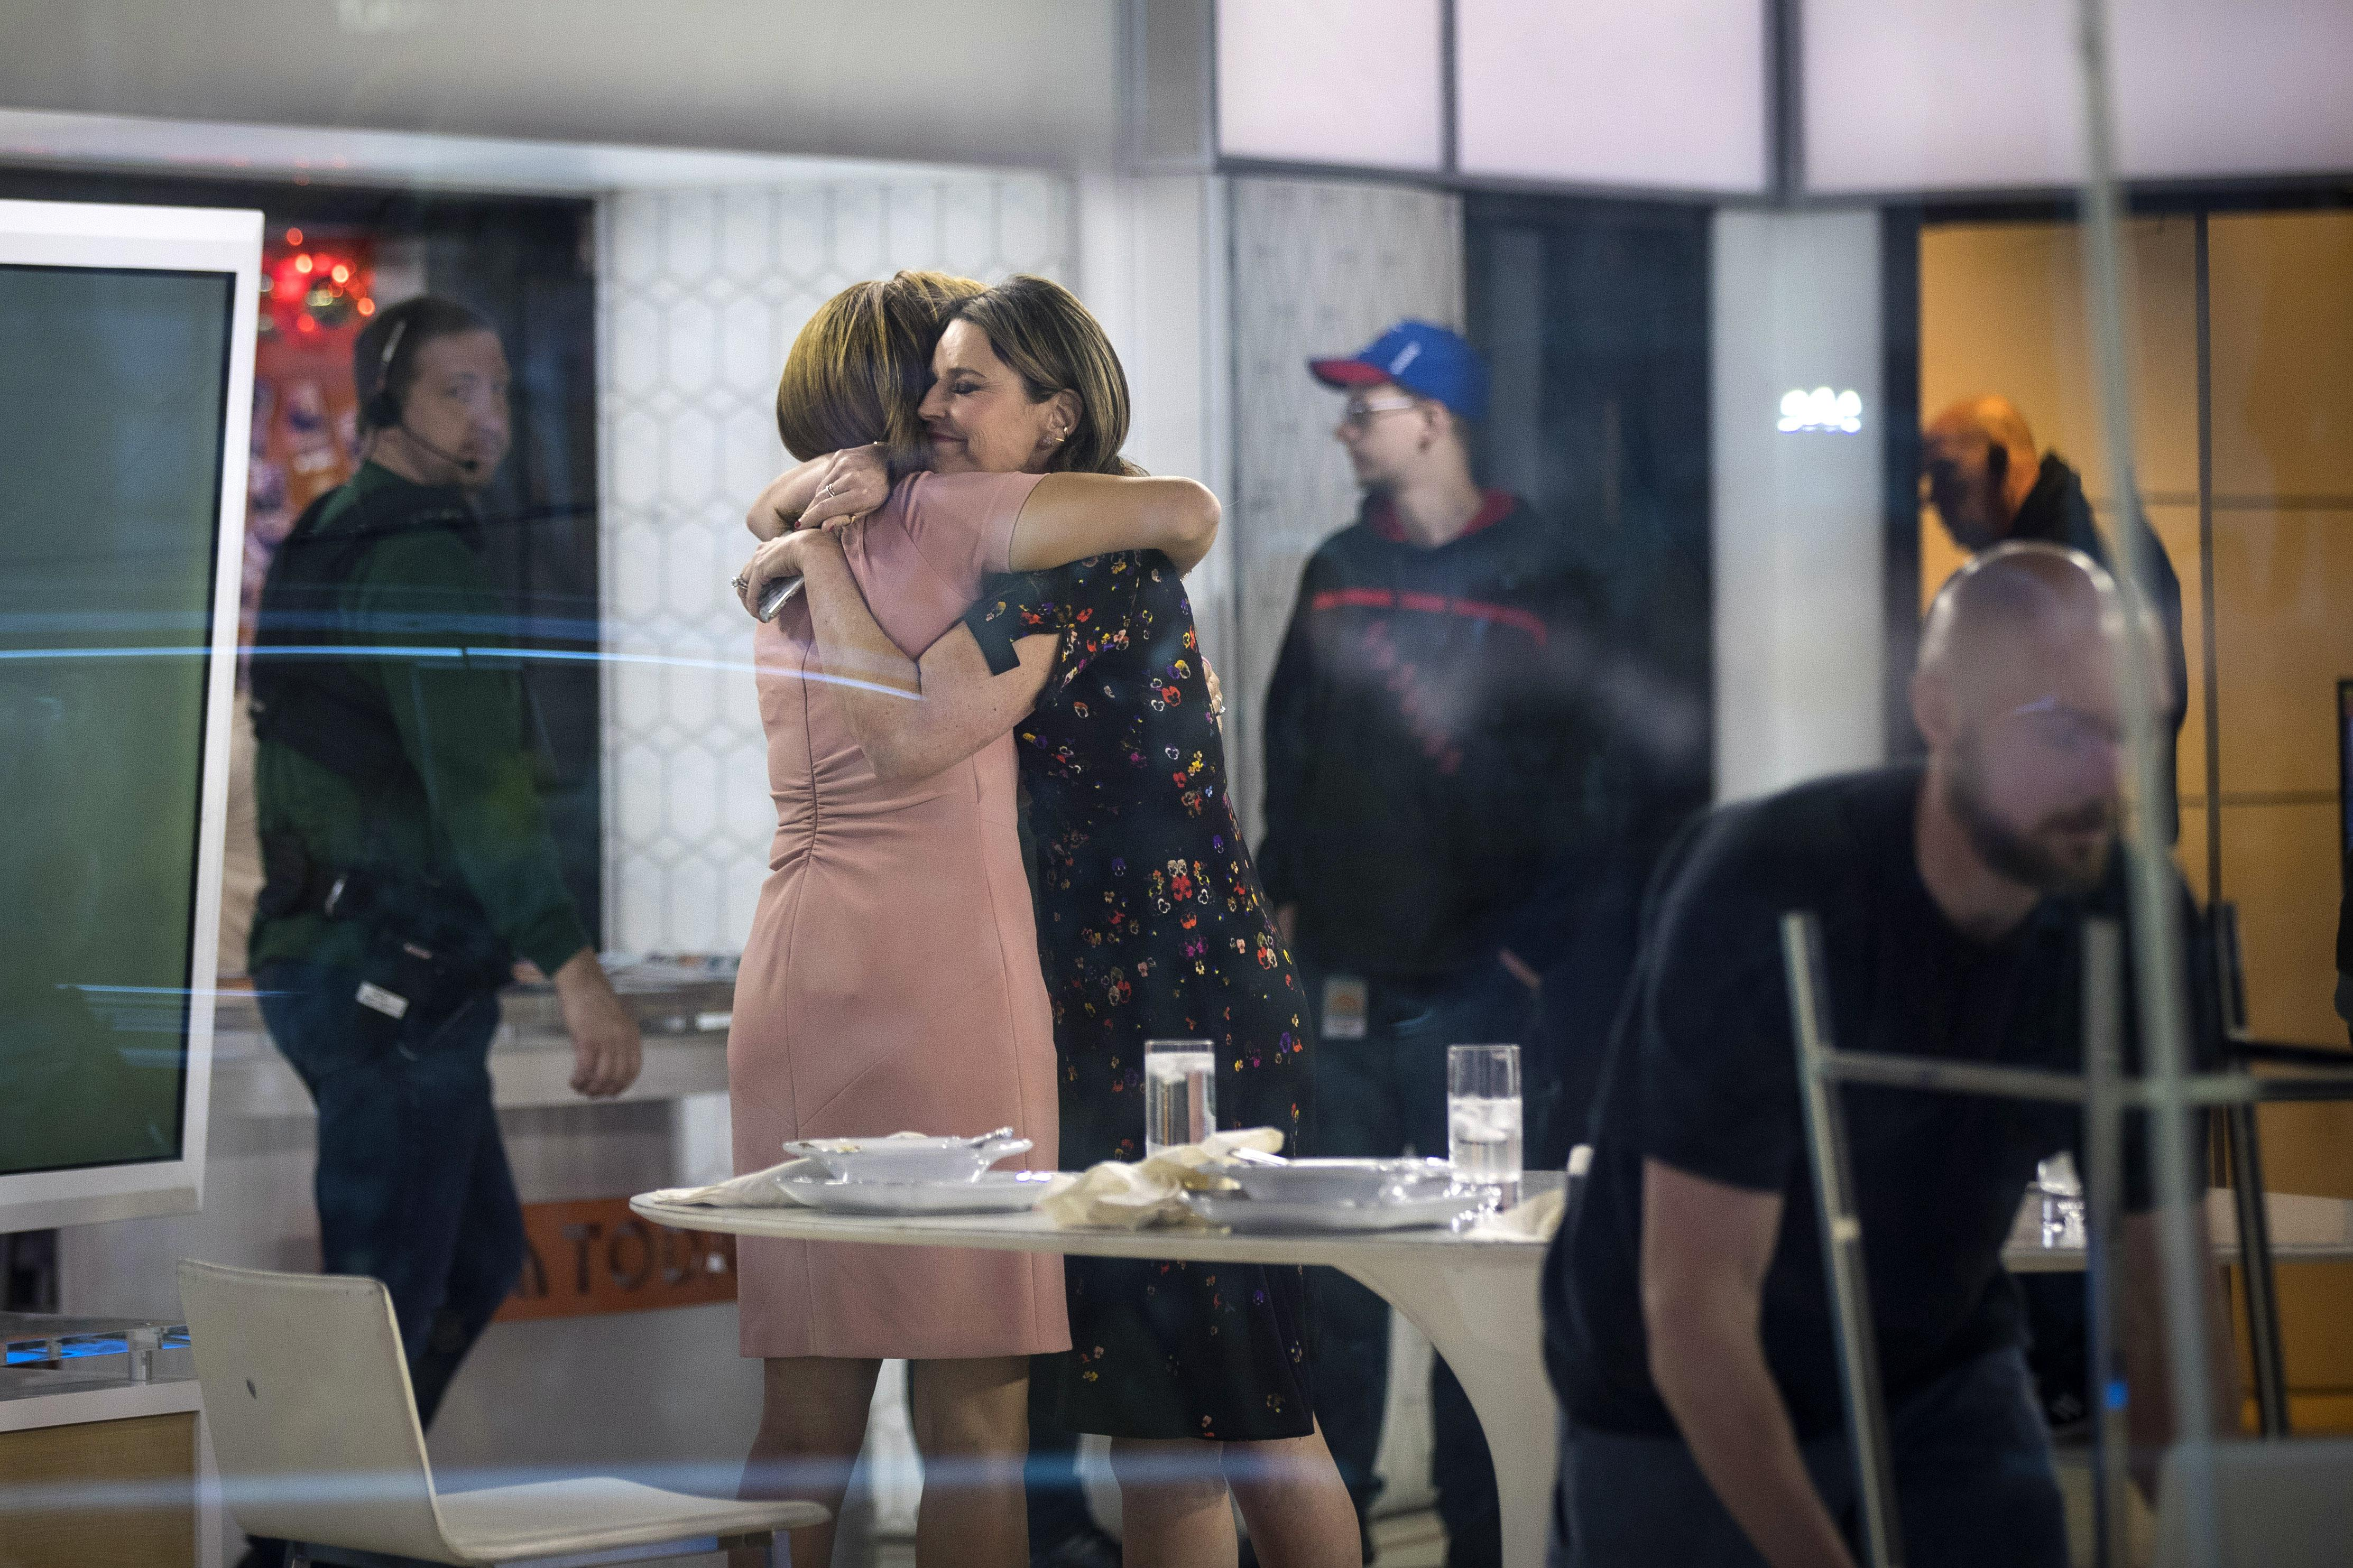 NEW YORK, NY - NOVEMBER 29: (L to R) Hoda Kotb and Savannah Guthrie embrace at the end of the show on the set of NBC's Today Show, November 29, 2017 in New York City. It was announced on Wednesday morning that long time Today Show host Matt Lauer had been fired for sexual misconduct. (Photo by Drew Angerer/Getty Images)